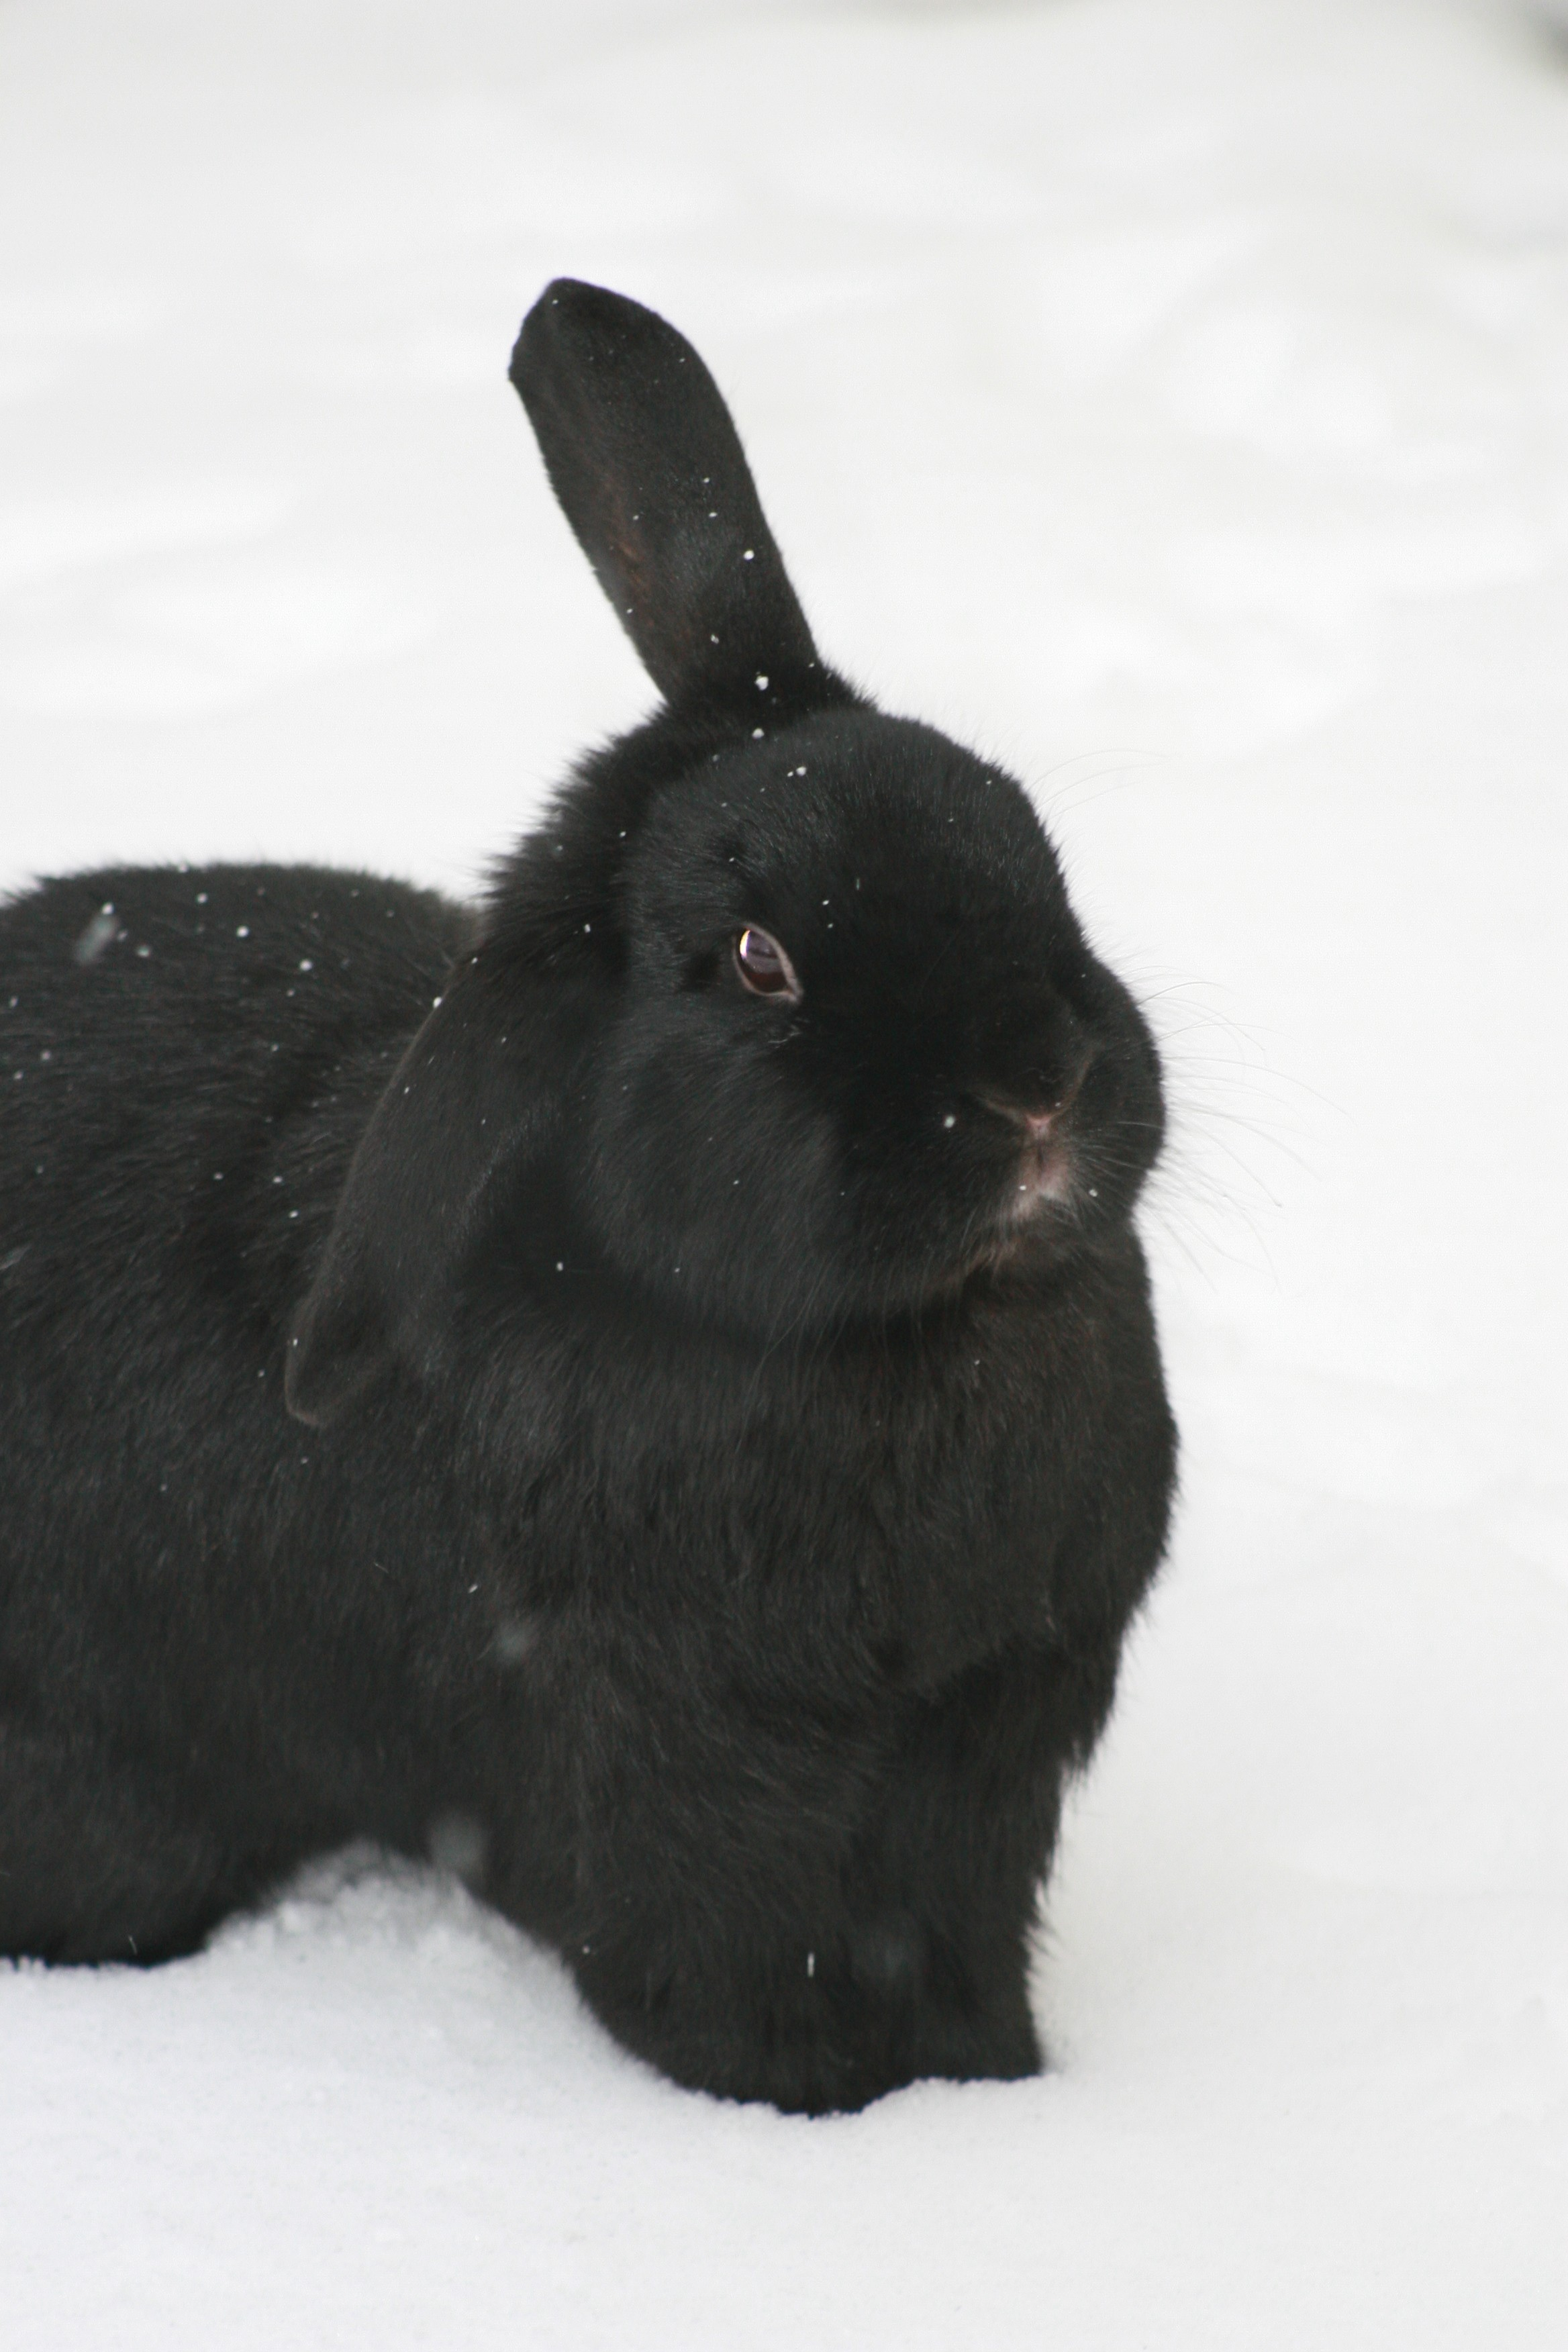 Snowflakes Show Up on This Bunny's Fur